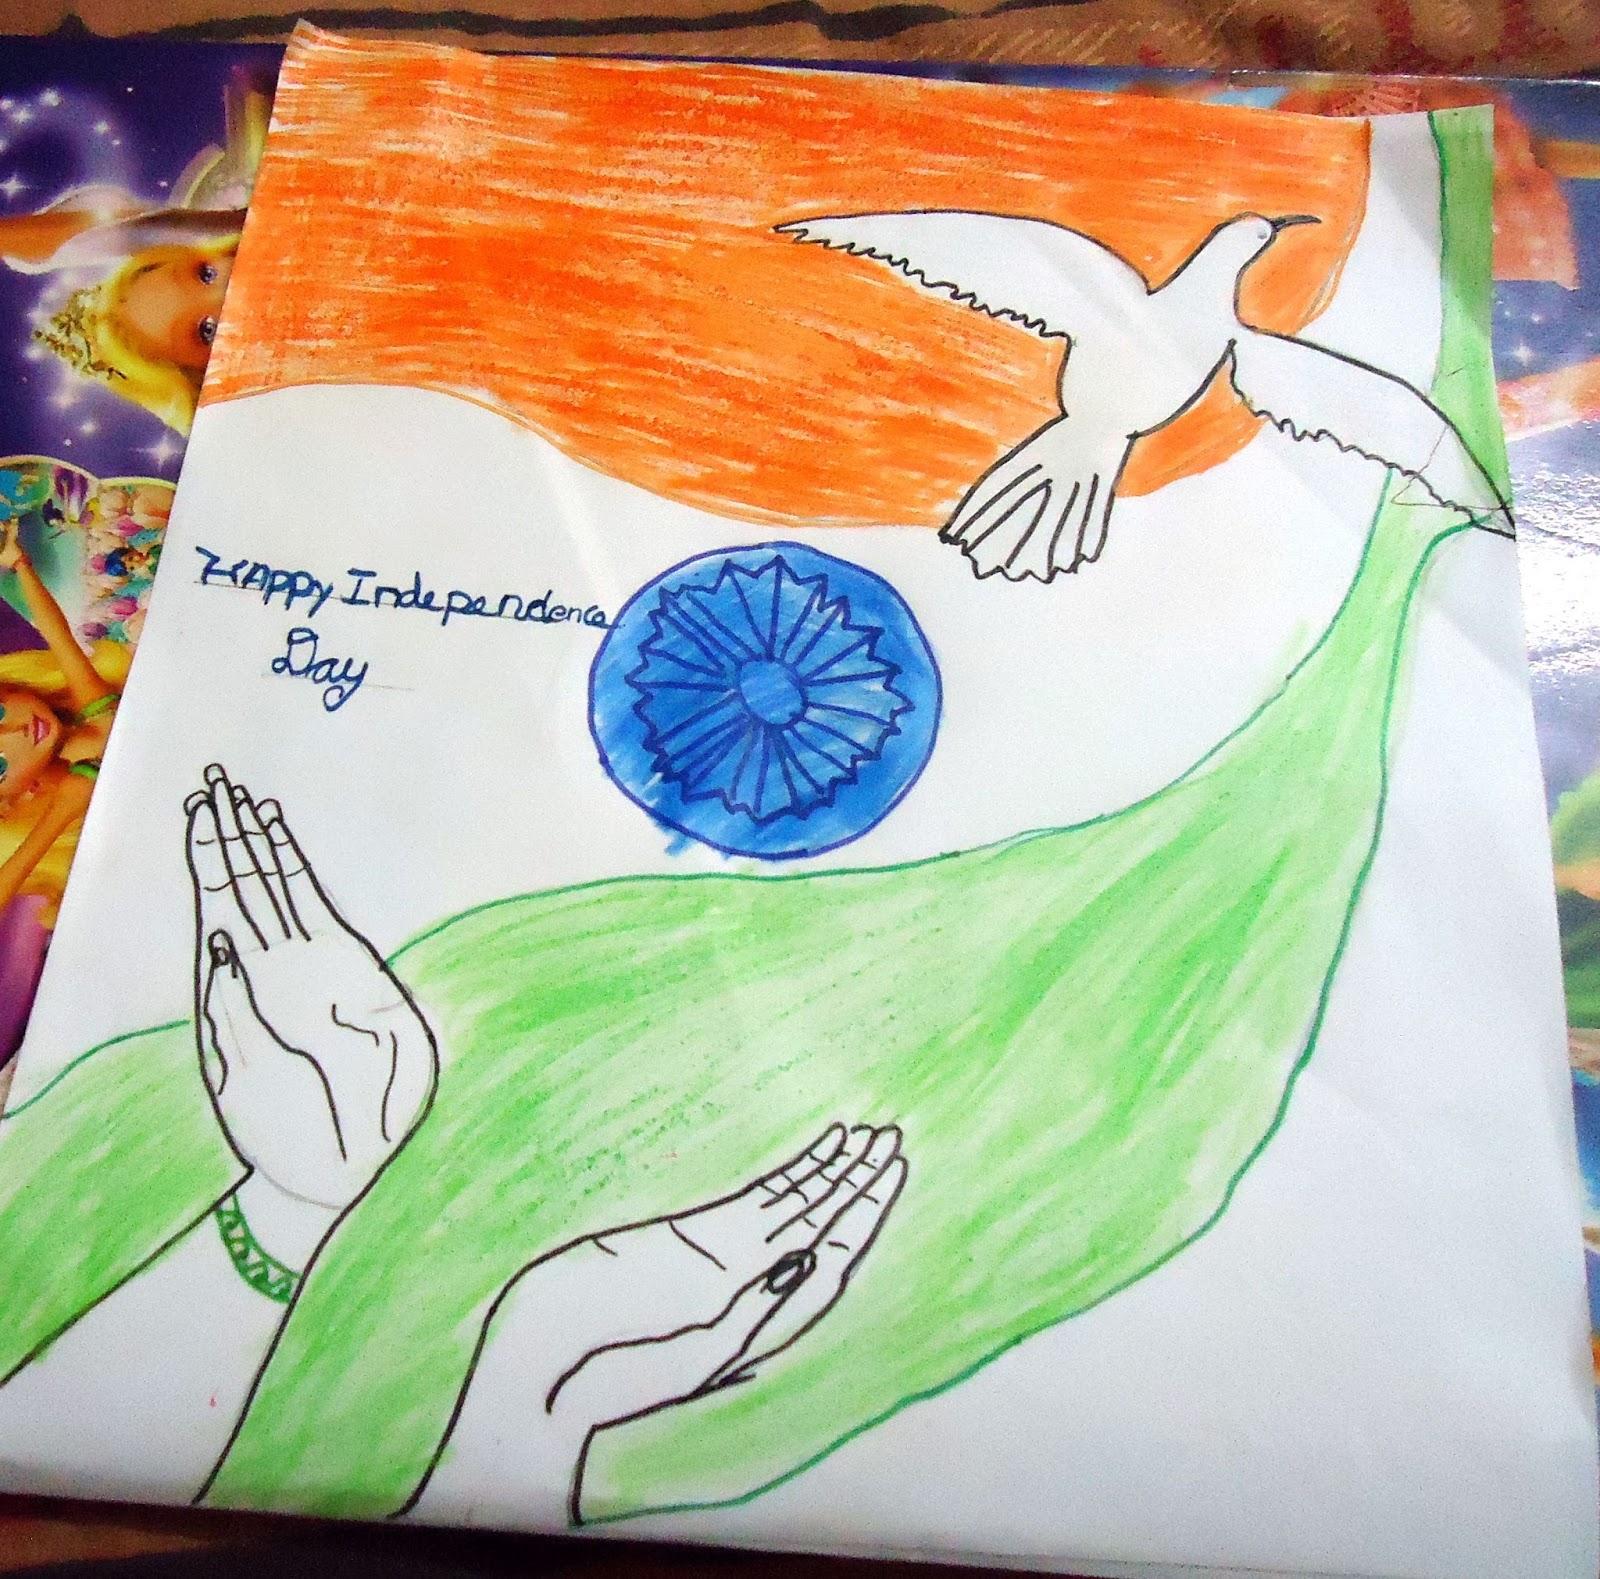 Best Drawings On Independence Day 15 August Competition Ideas